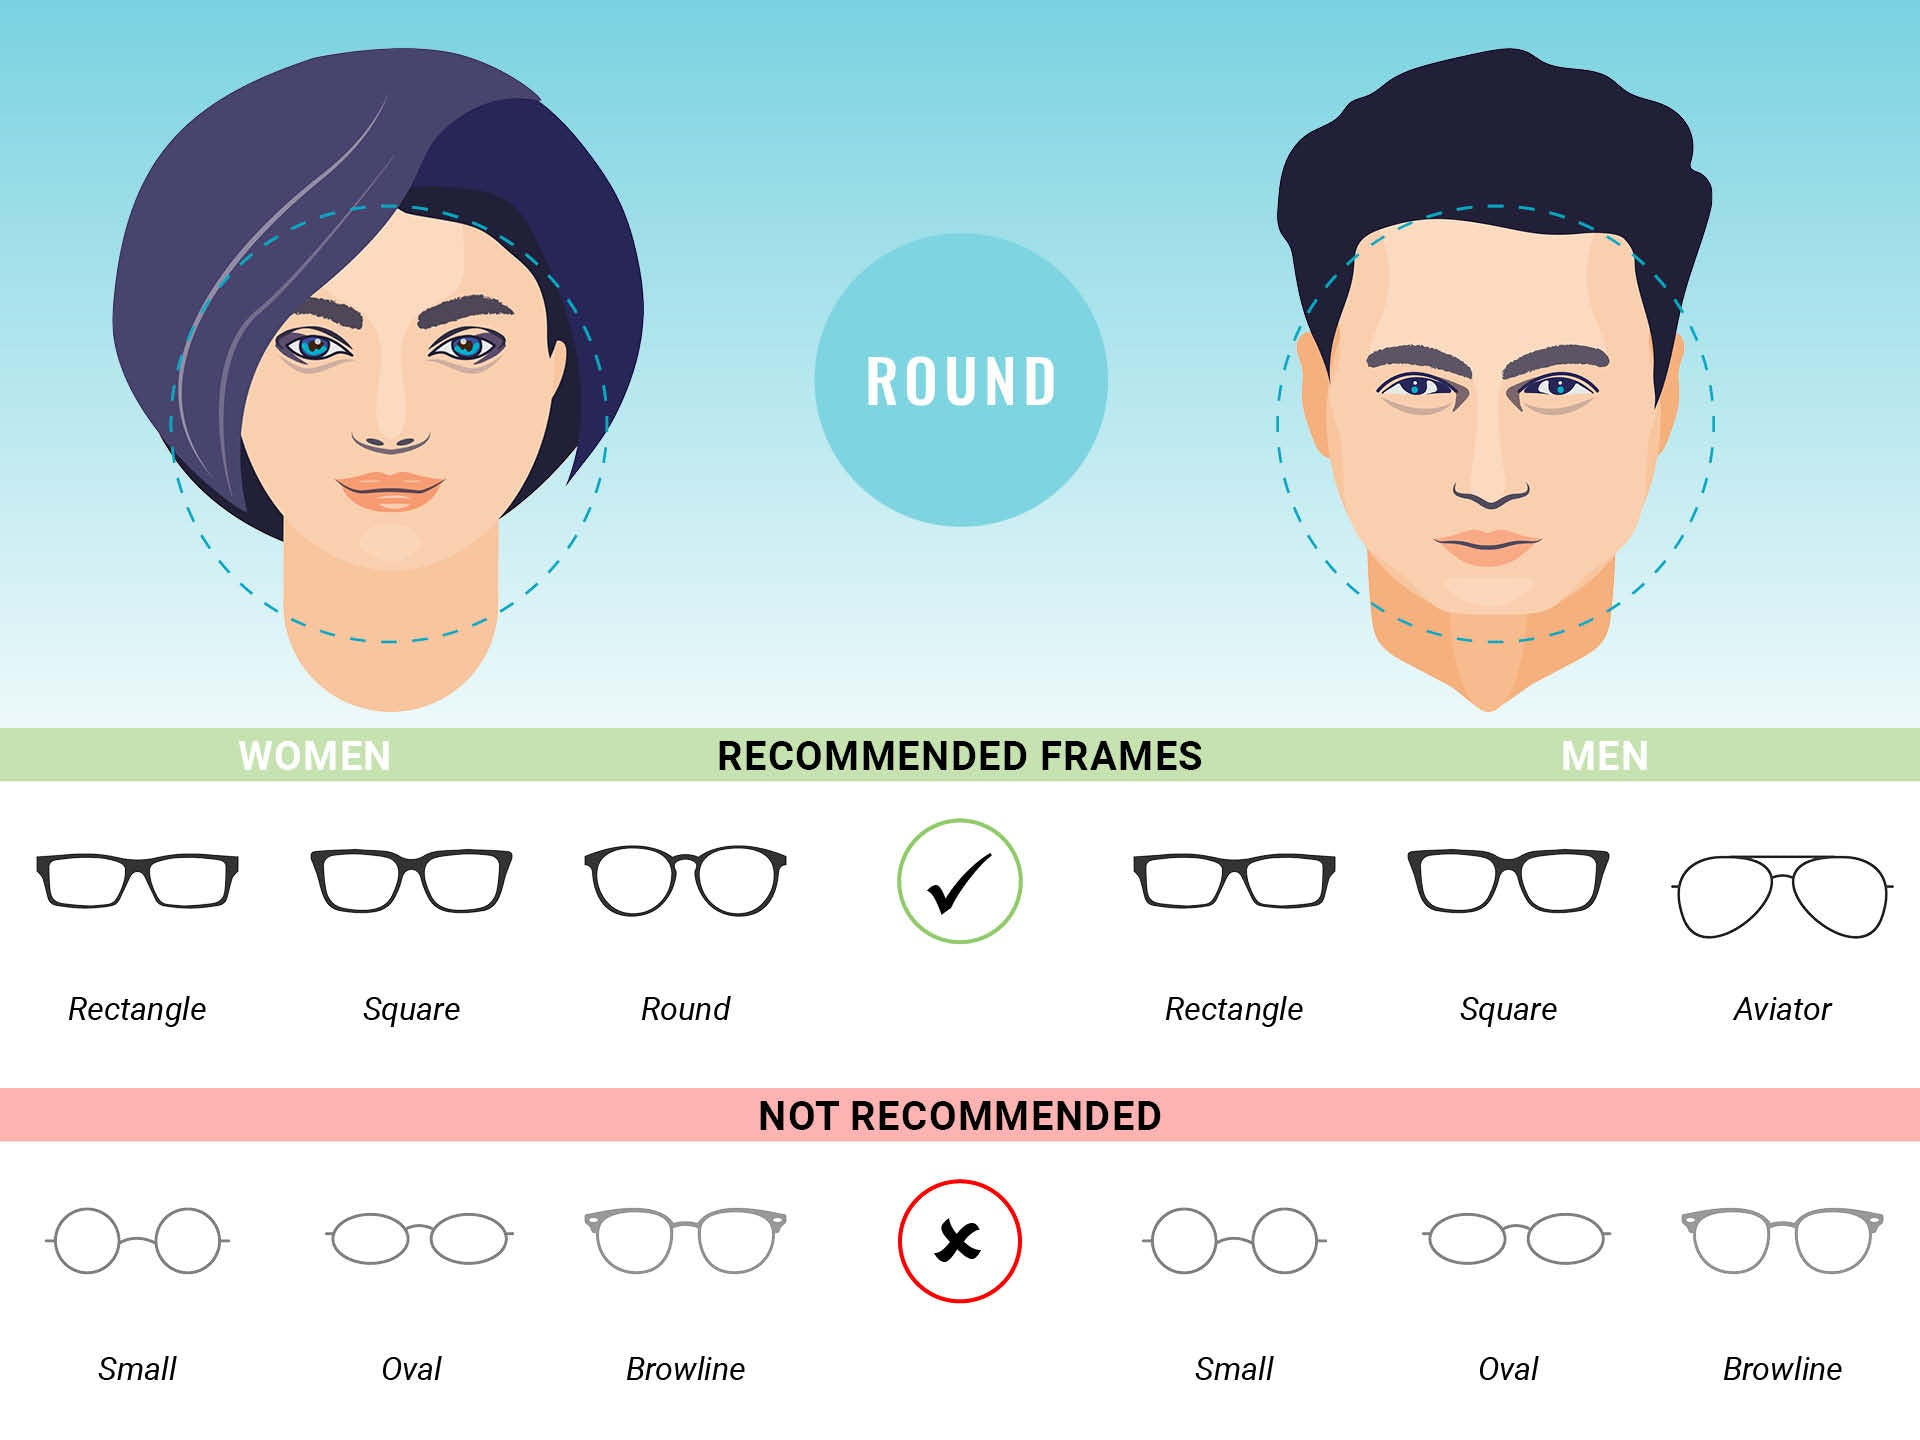 Eyeglass frame recommendations for round face shapes for men and women